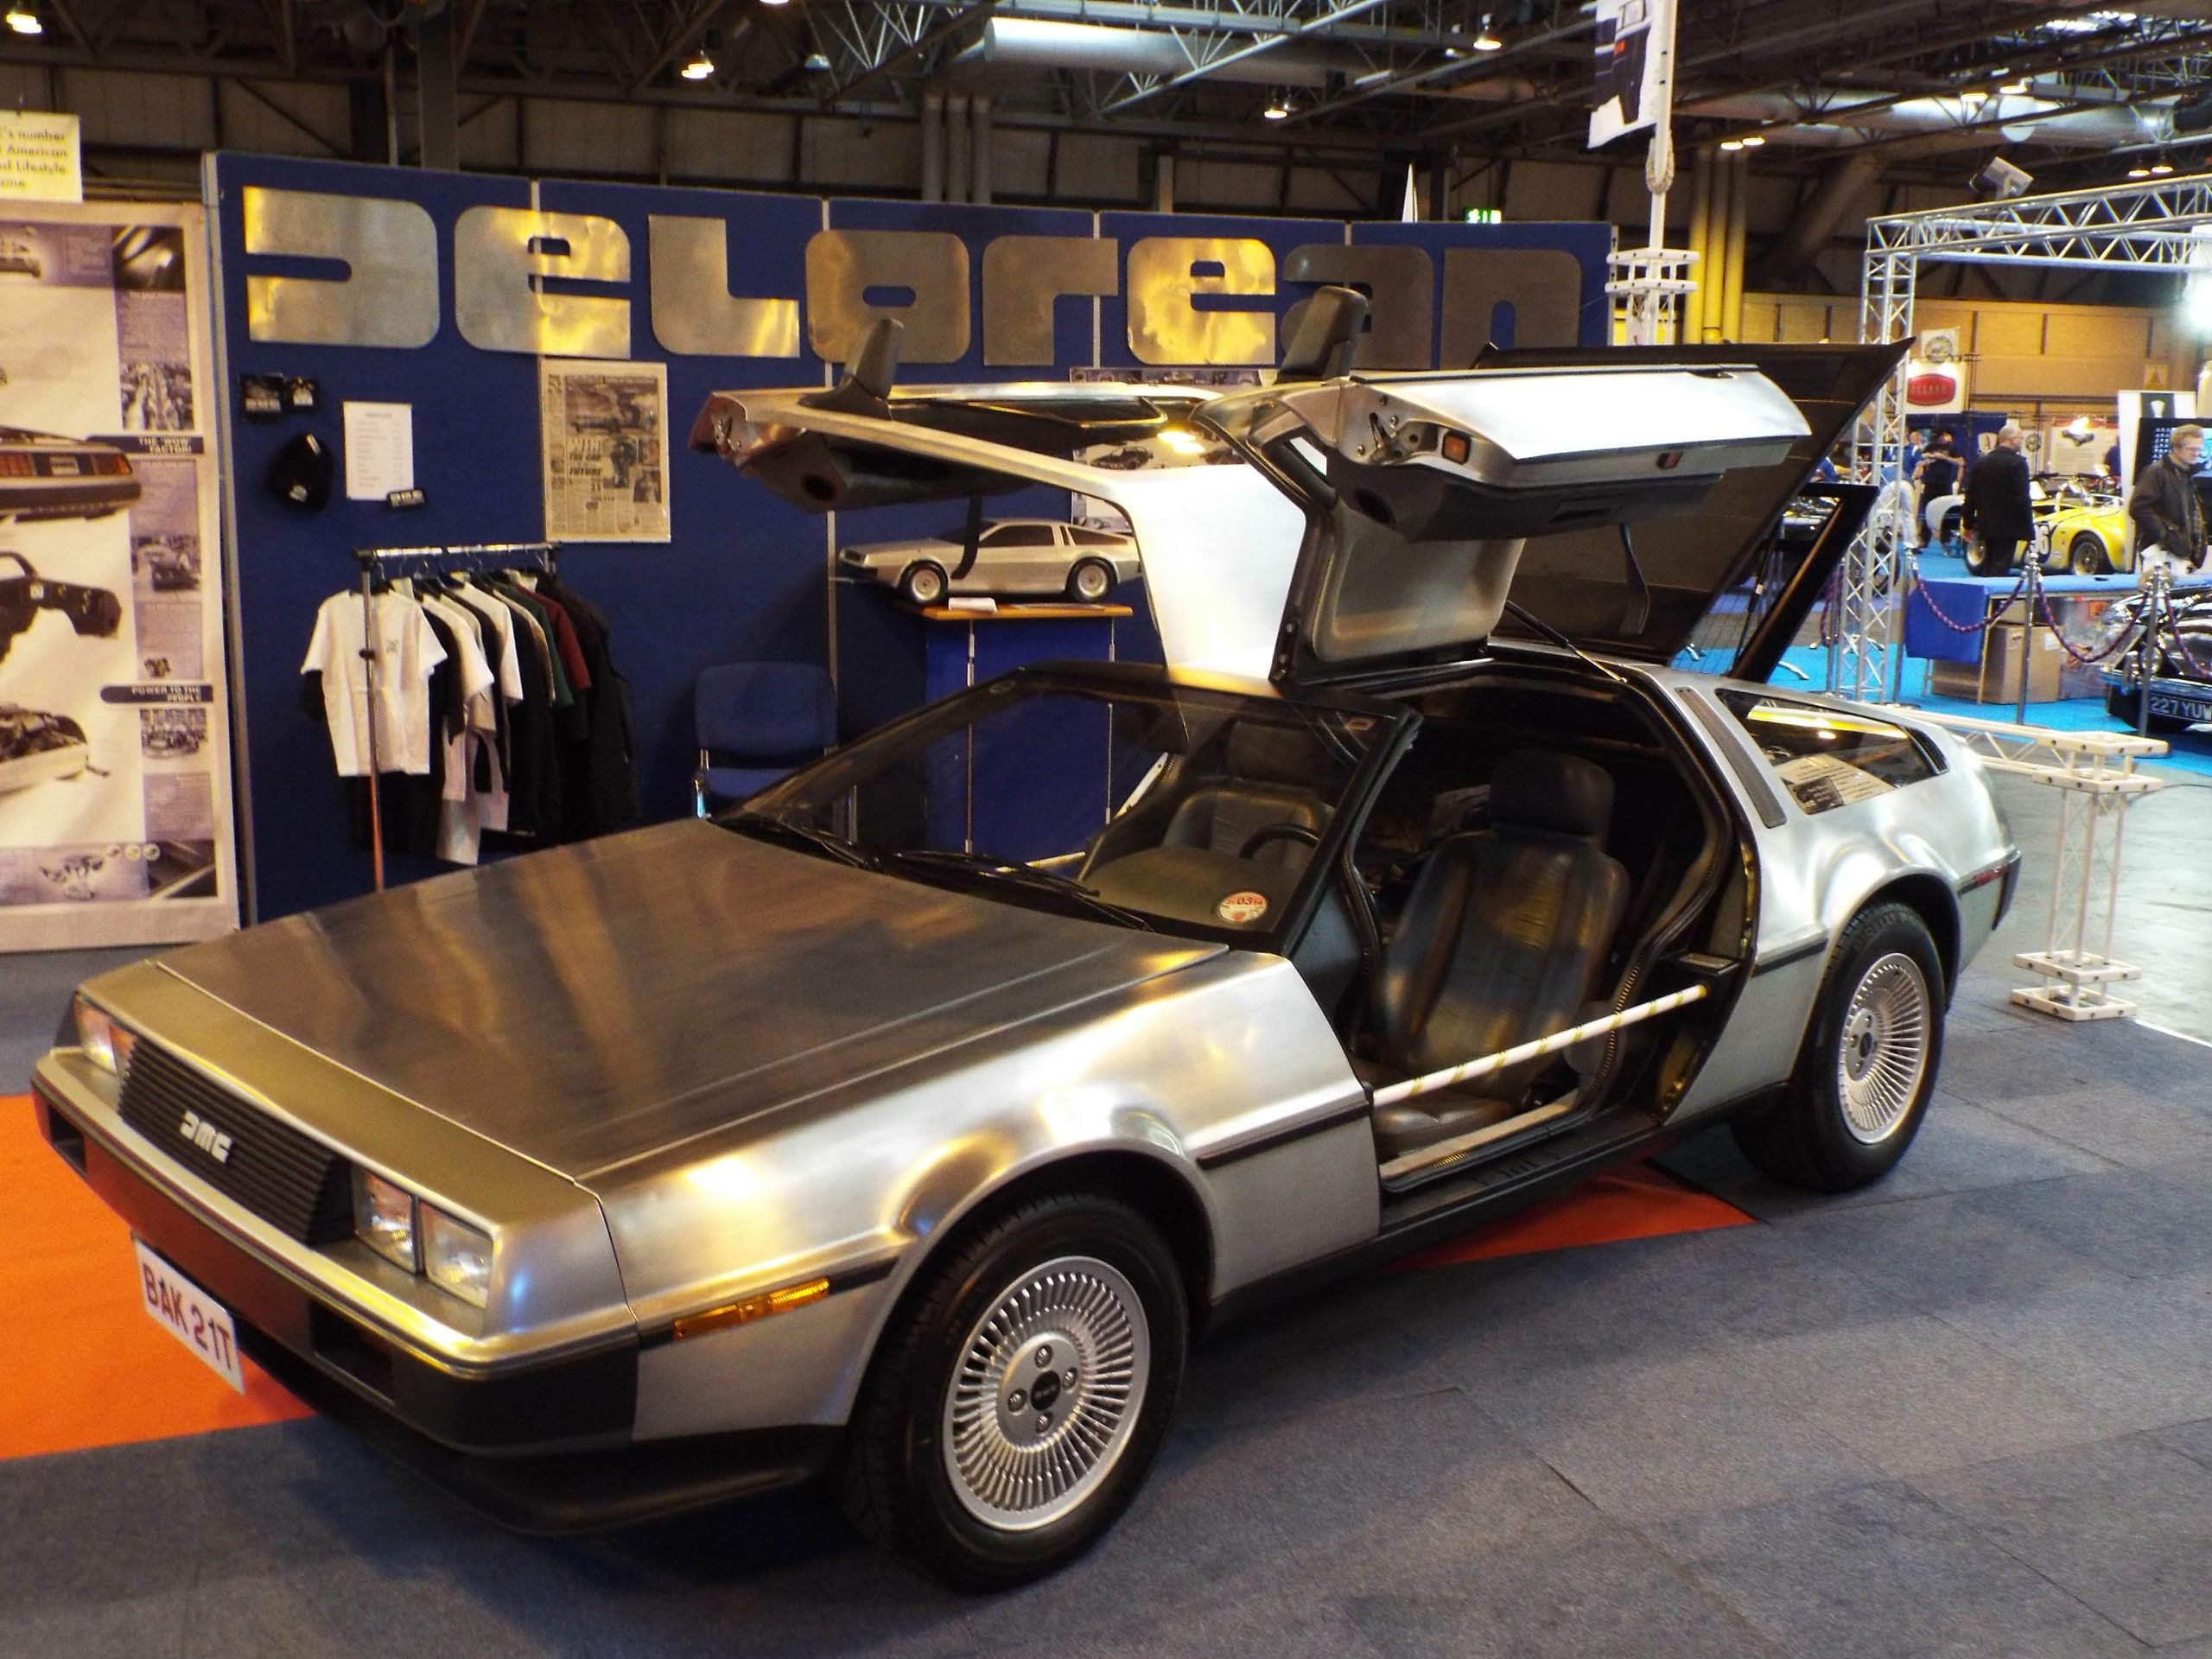 Delorean DMC 12 2 10931420315 scaled DeLorean: The Strange Story Behind The Iconic 80s Sports Car And Its Creator